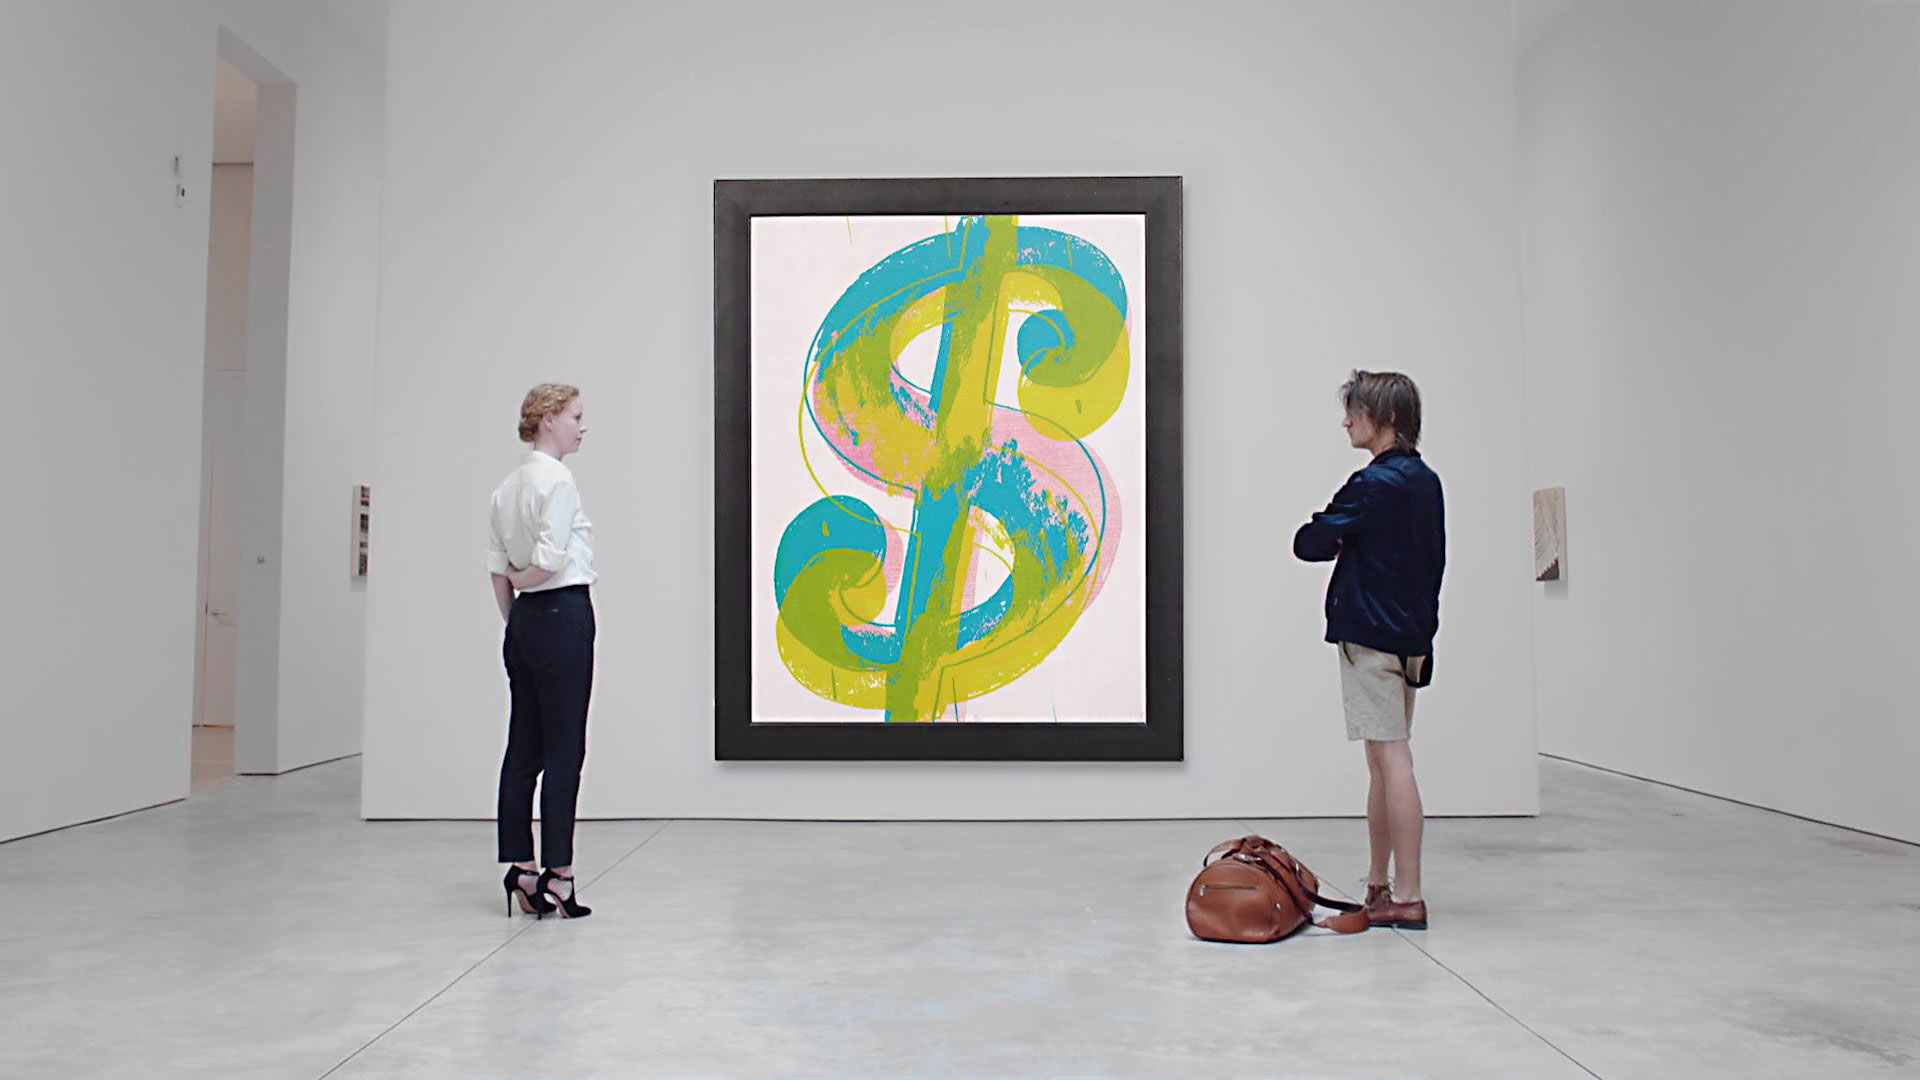 The Art Market (In Four Parts)